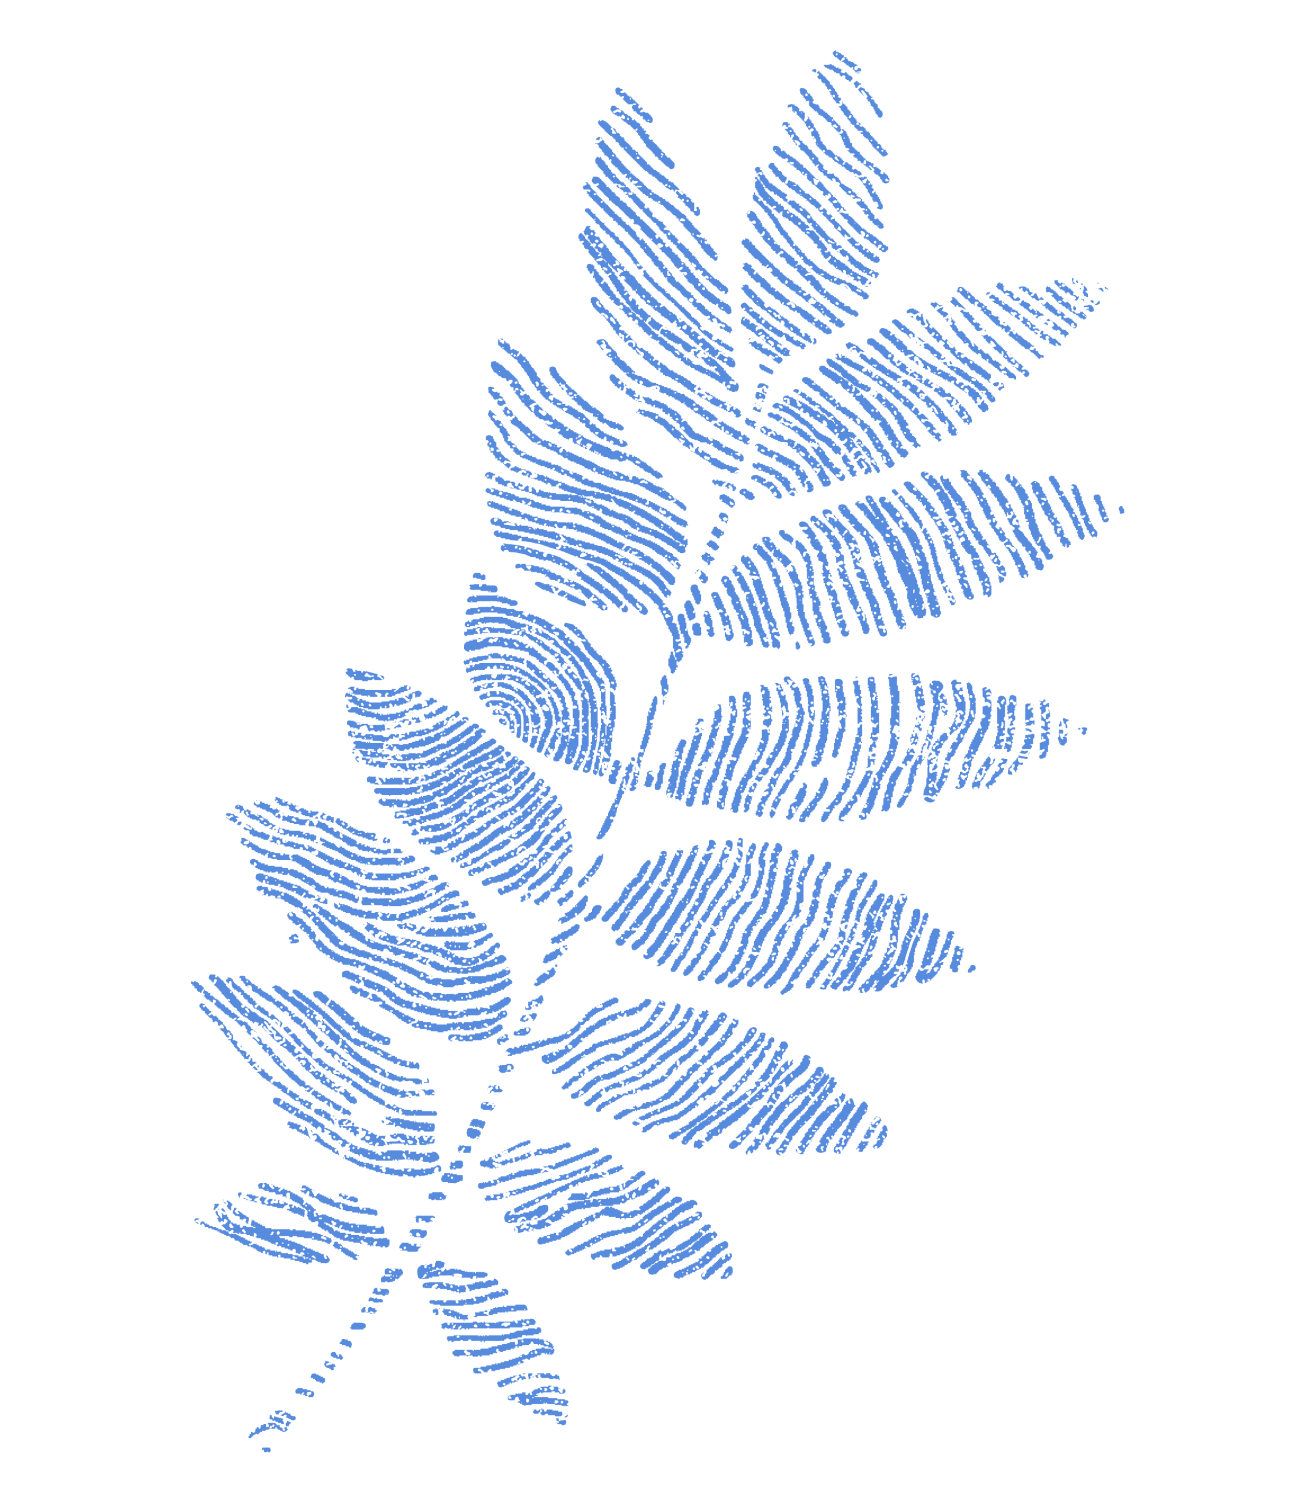 Decorative plant graphic